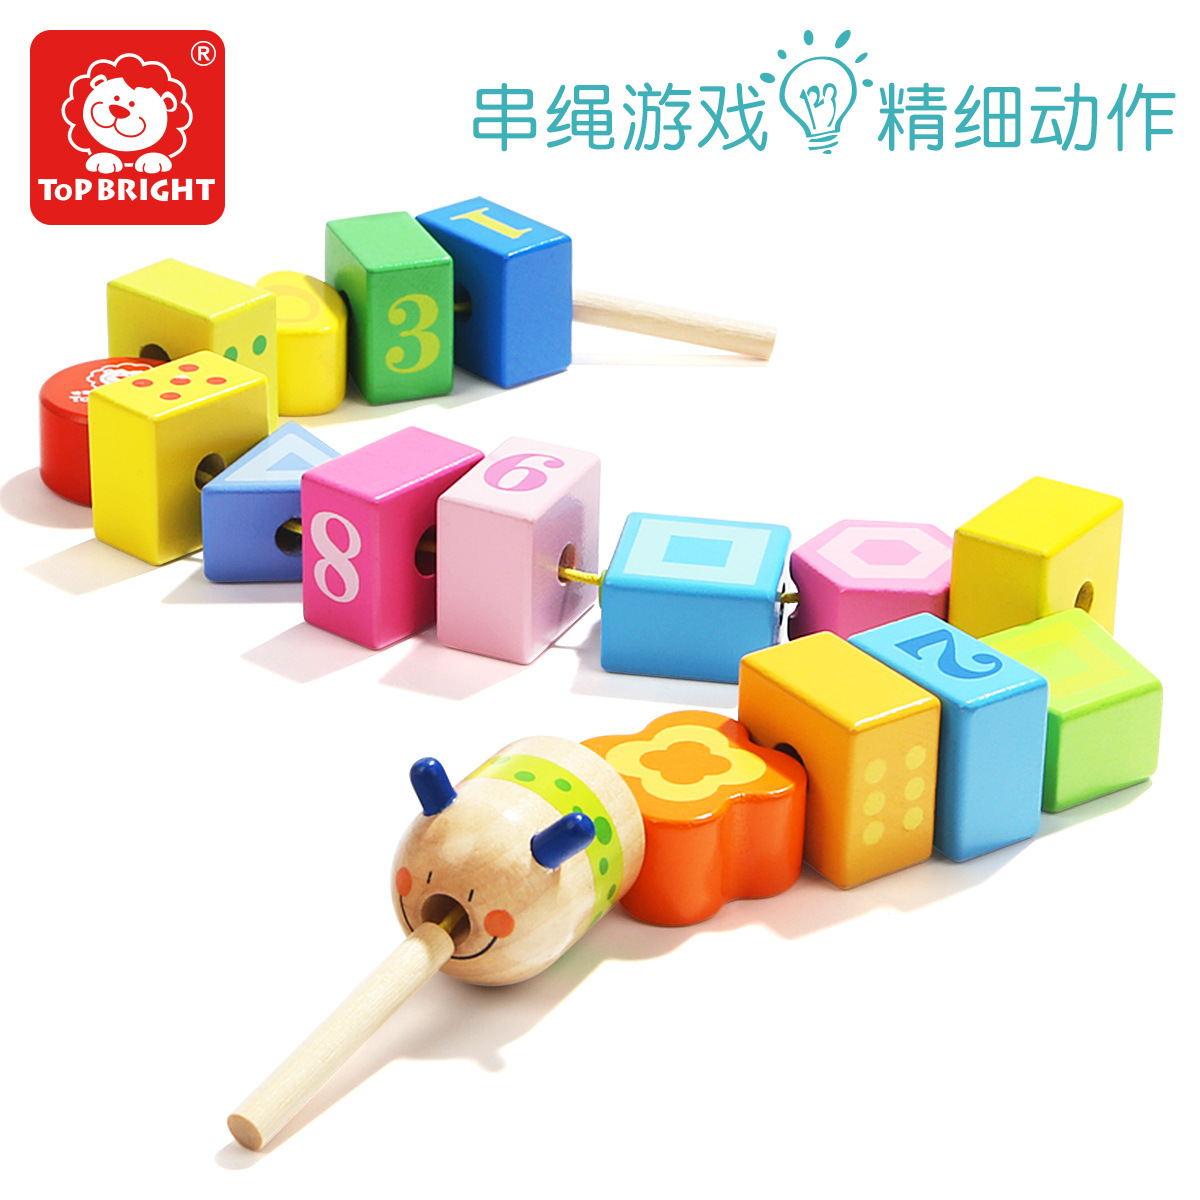 TOPBRIGHT Chuan Chuan Zhu Children Toy Building Blocks Wear Beads One Year Old Baby Toy Educational Aged 1-2 Years Wearing Rope